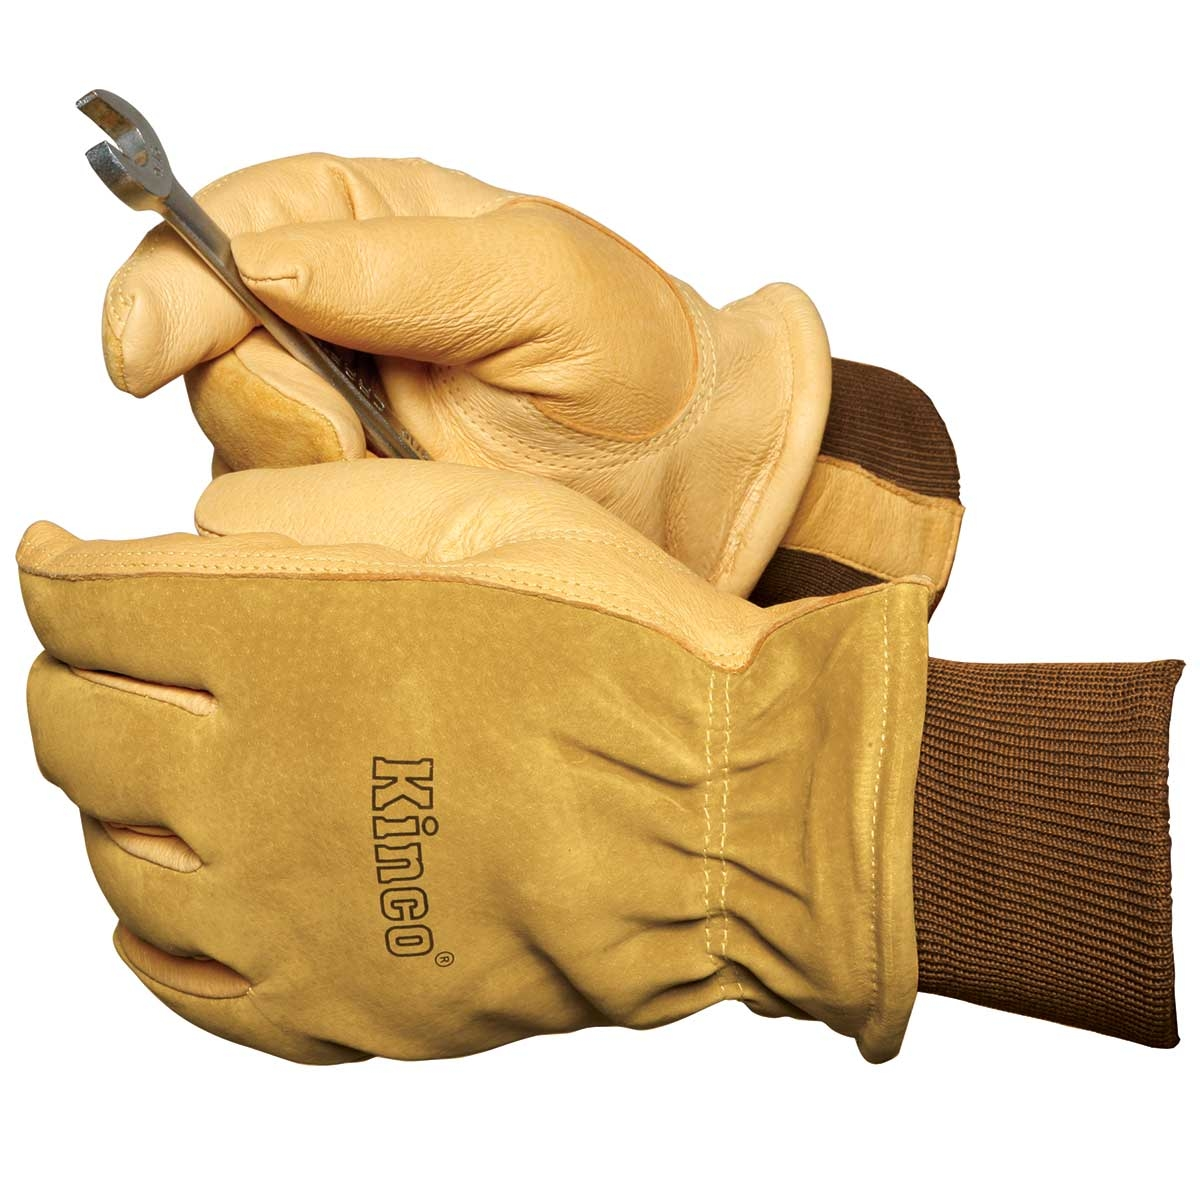 Leather work gloves with thinsulate lining - Leather Insulated Gloves